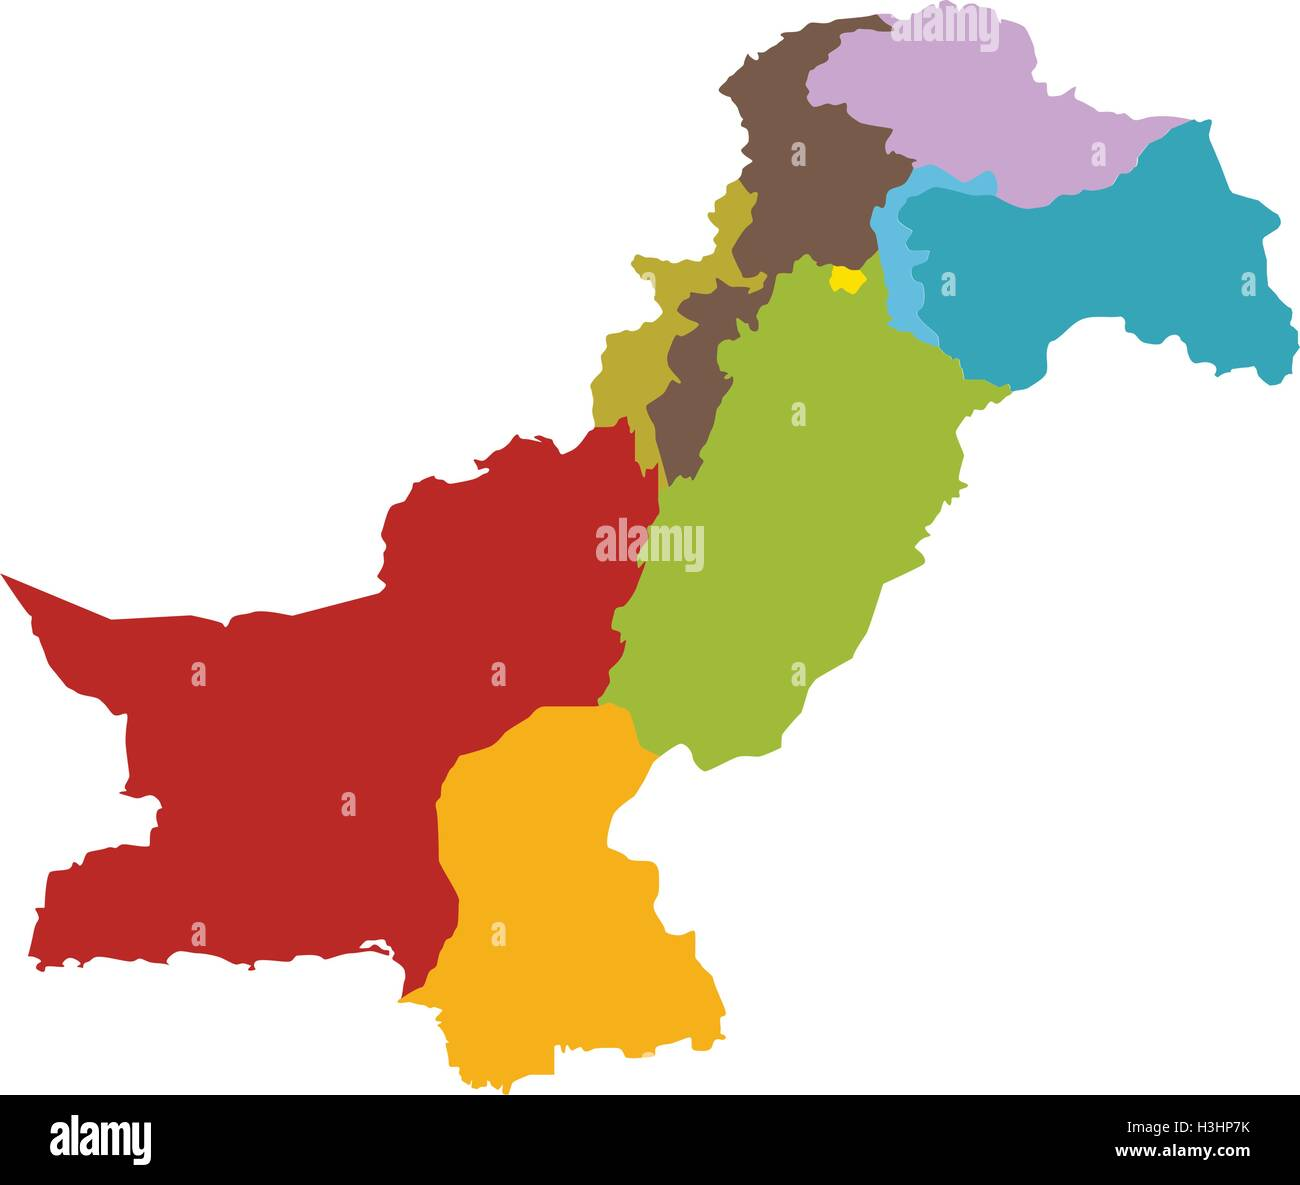 Pakistan Map With All States And Provinces Stock Vector Art - Pakistan map